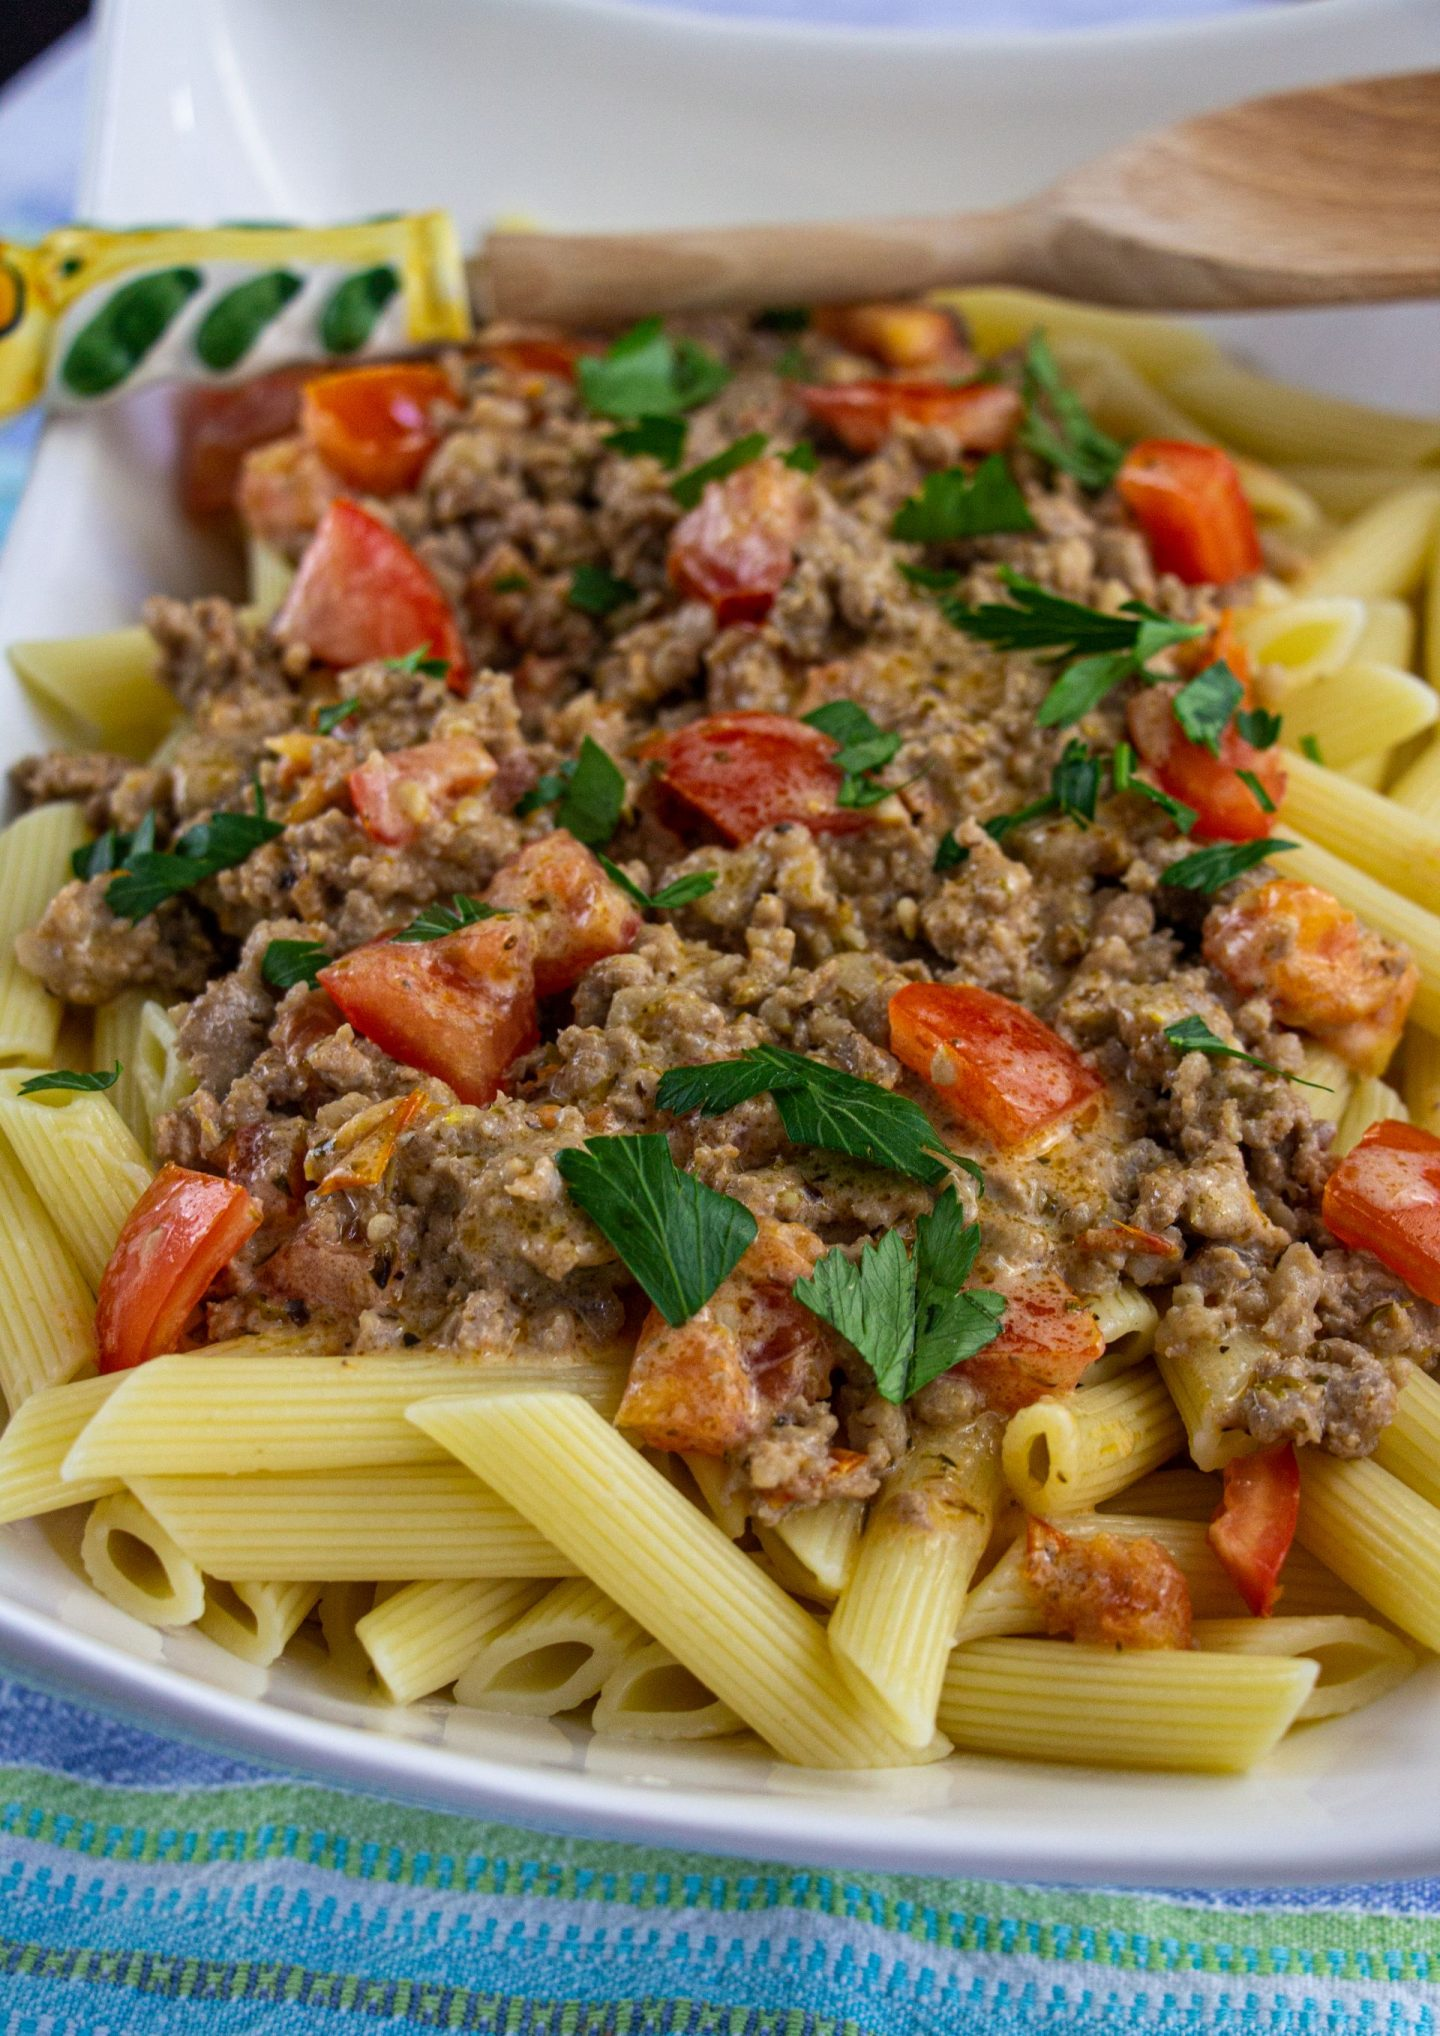 Penne with Italian Sausage and Creamy Tomato Sauce